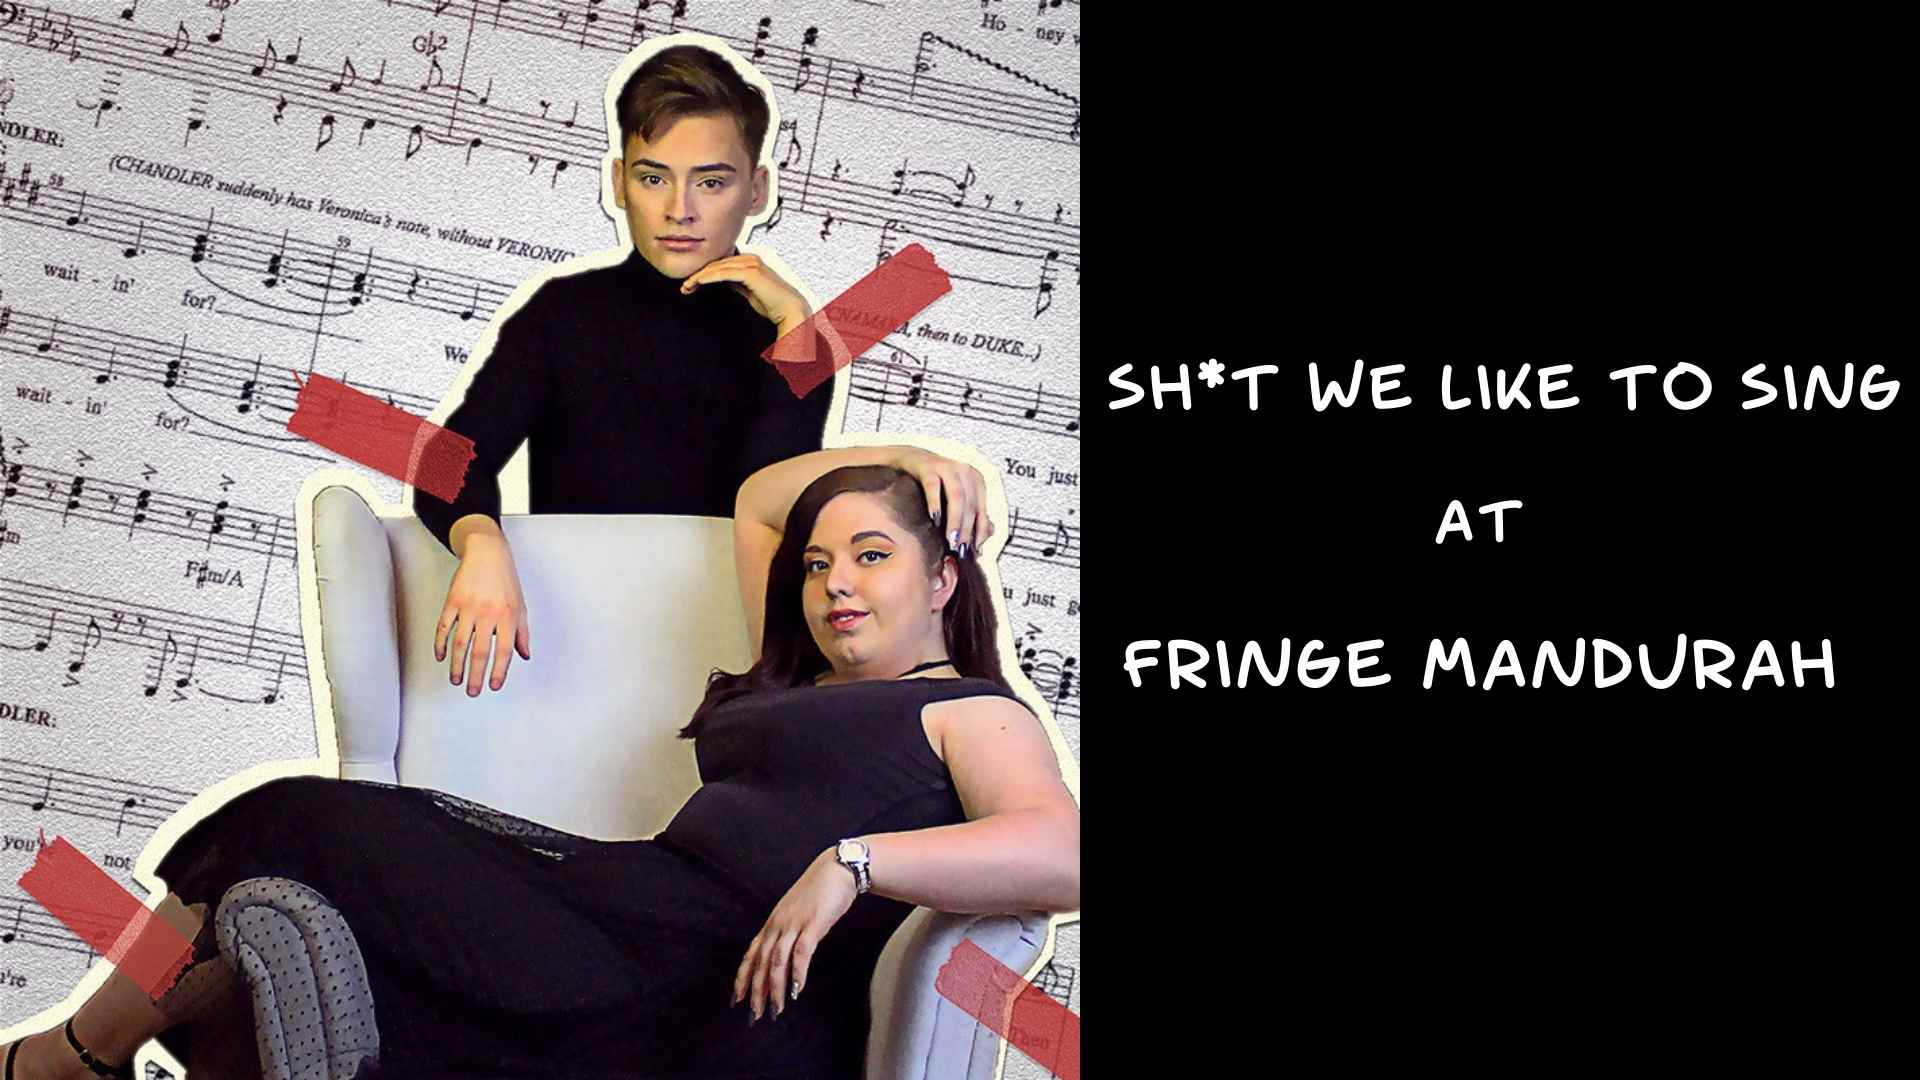 sh*t-we-like-to-sing-at-Fringe-Mandurah